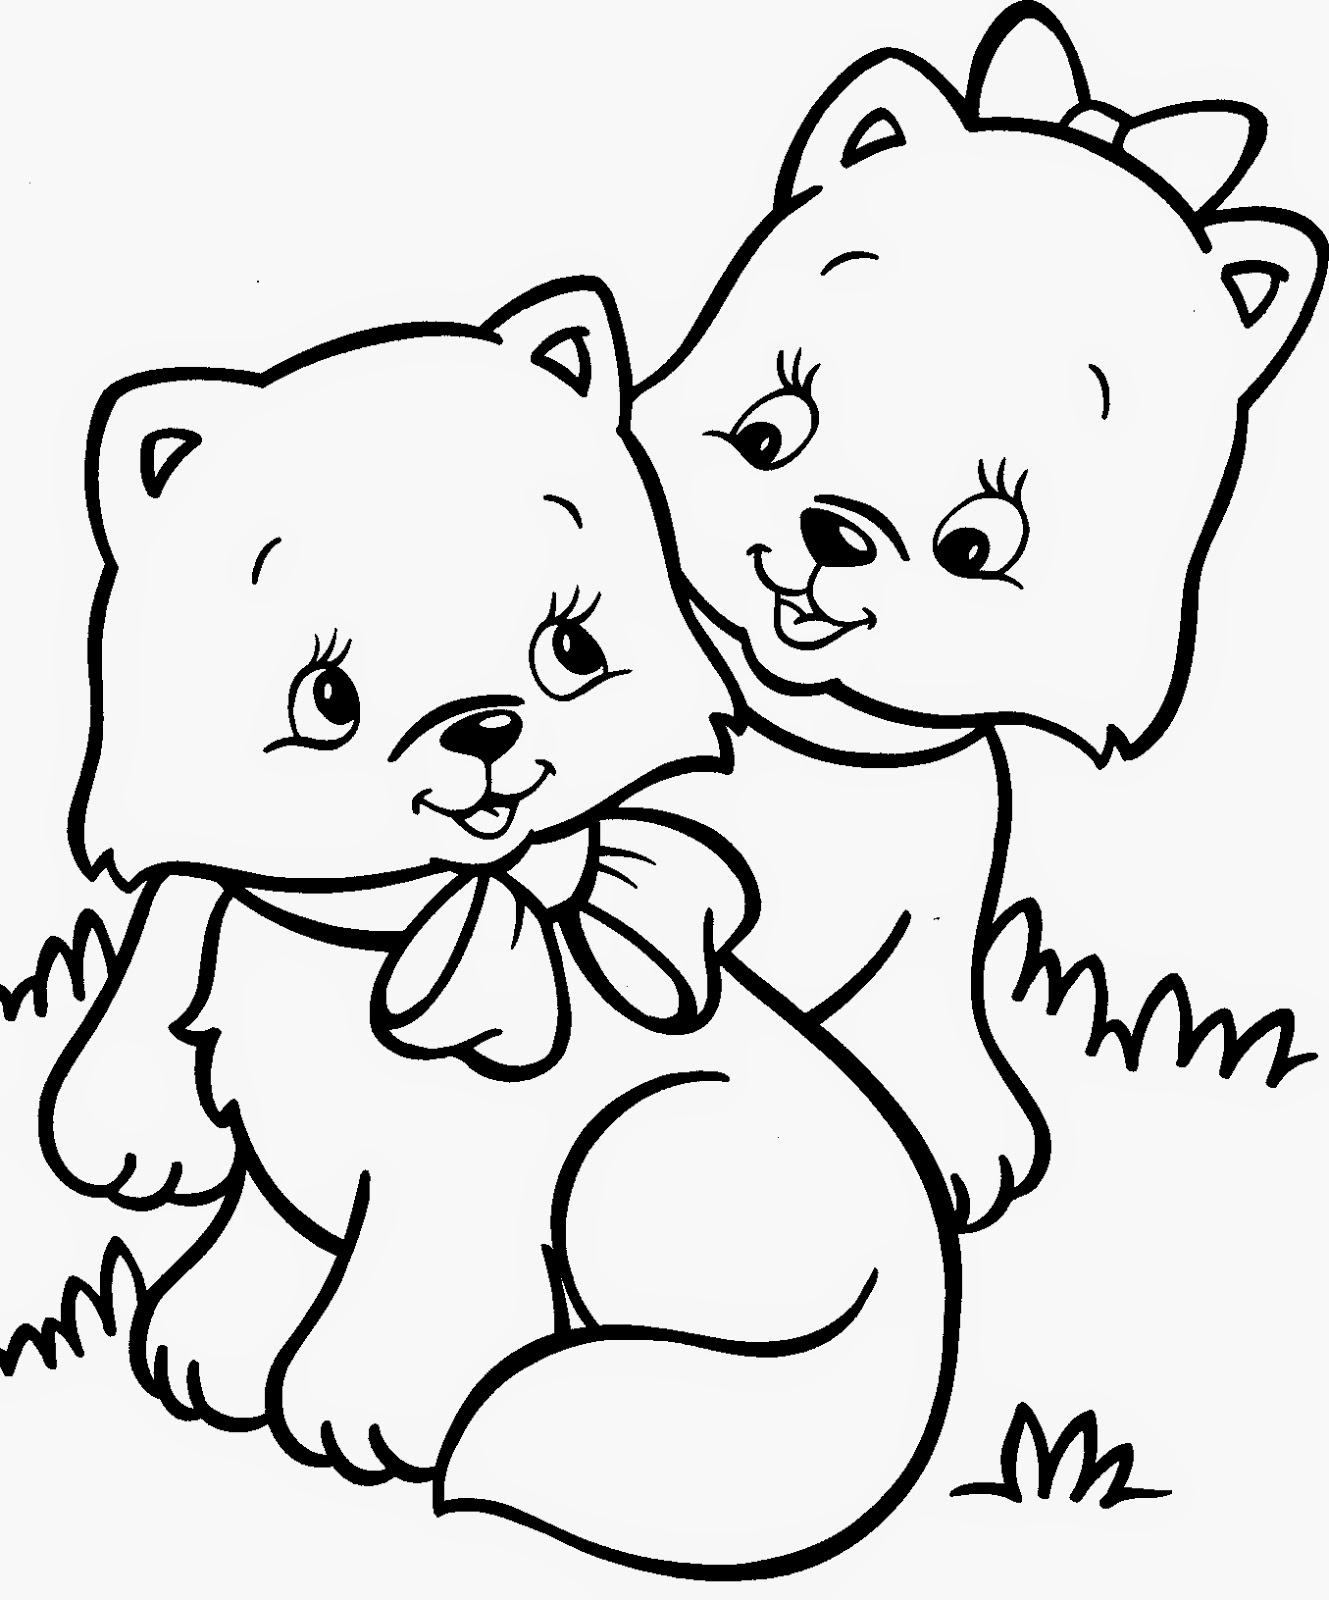 coloring worksheets cat cat coloring pages coloringpages1001com coloring cat worksheets